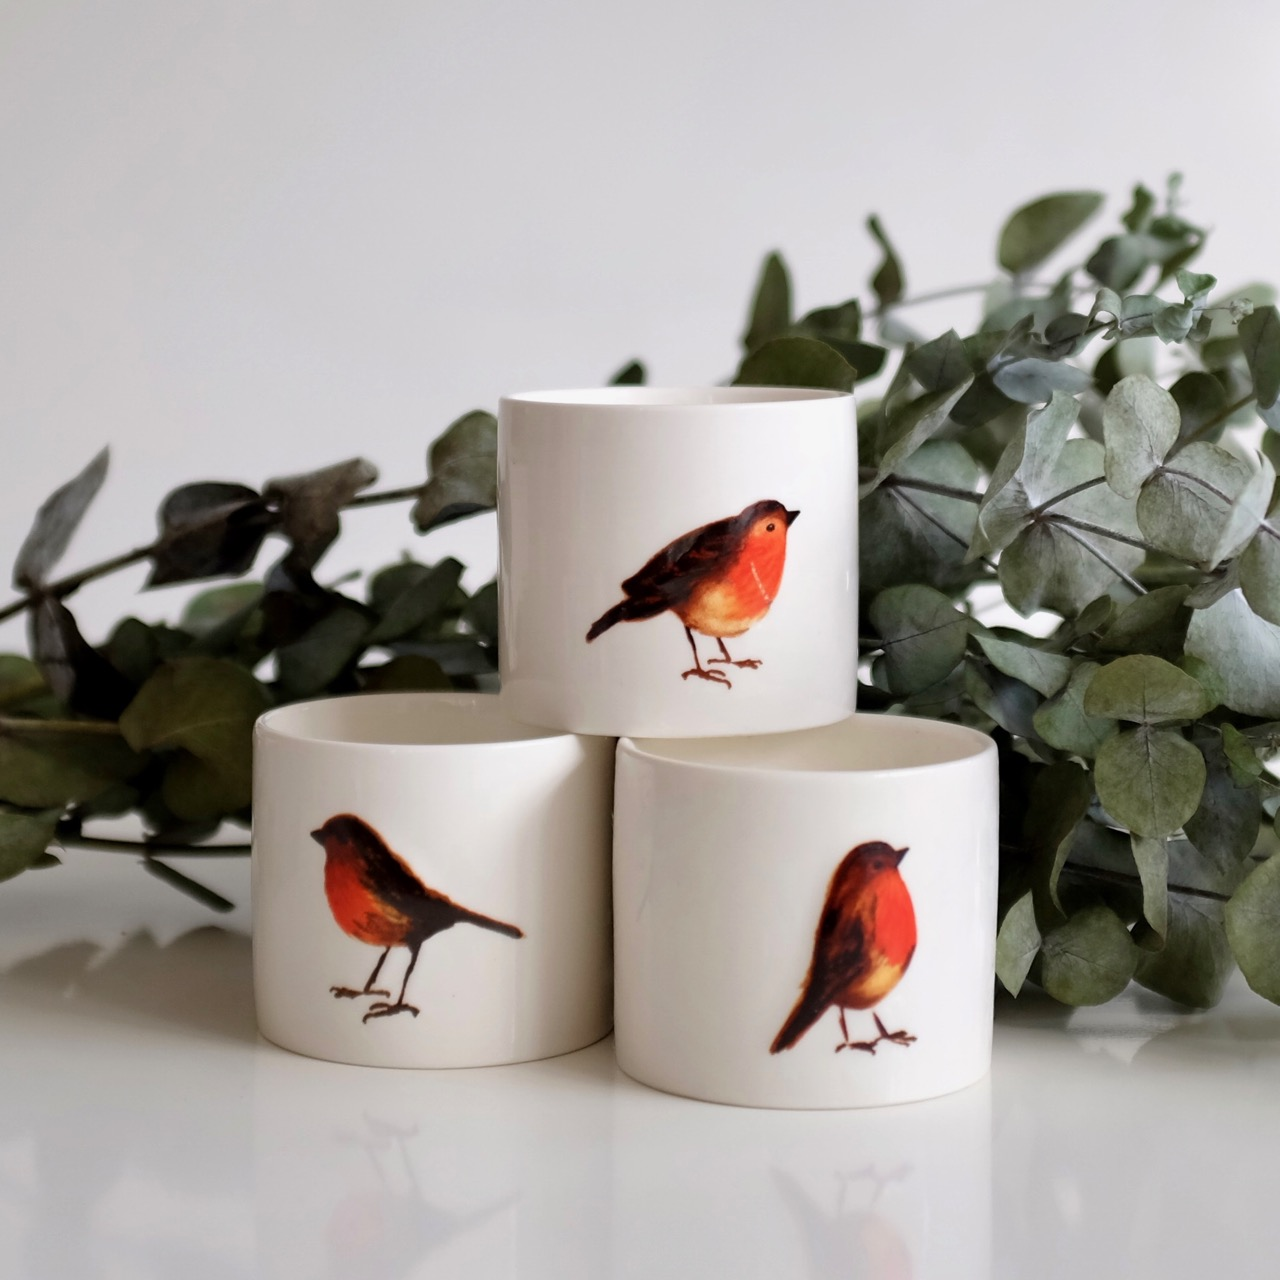 Robin candles by Sainsbury's